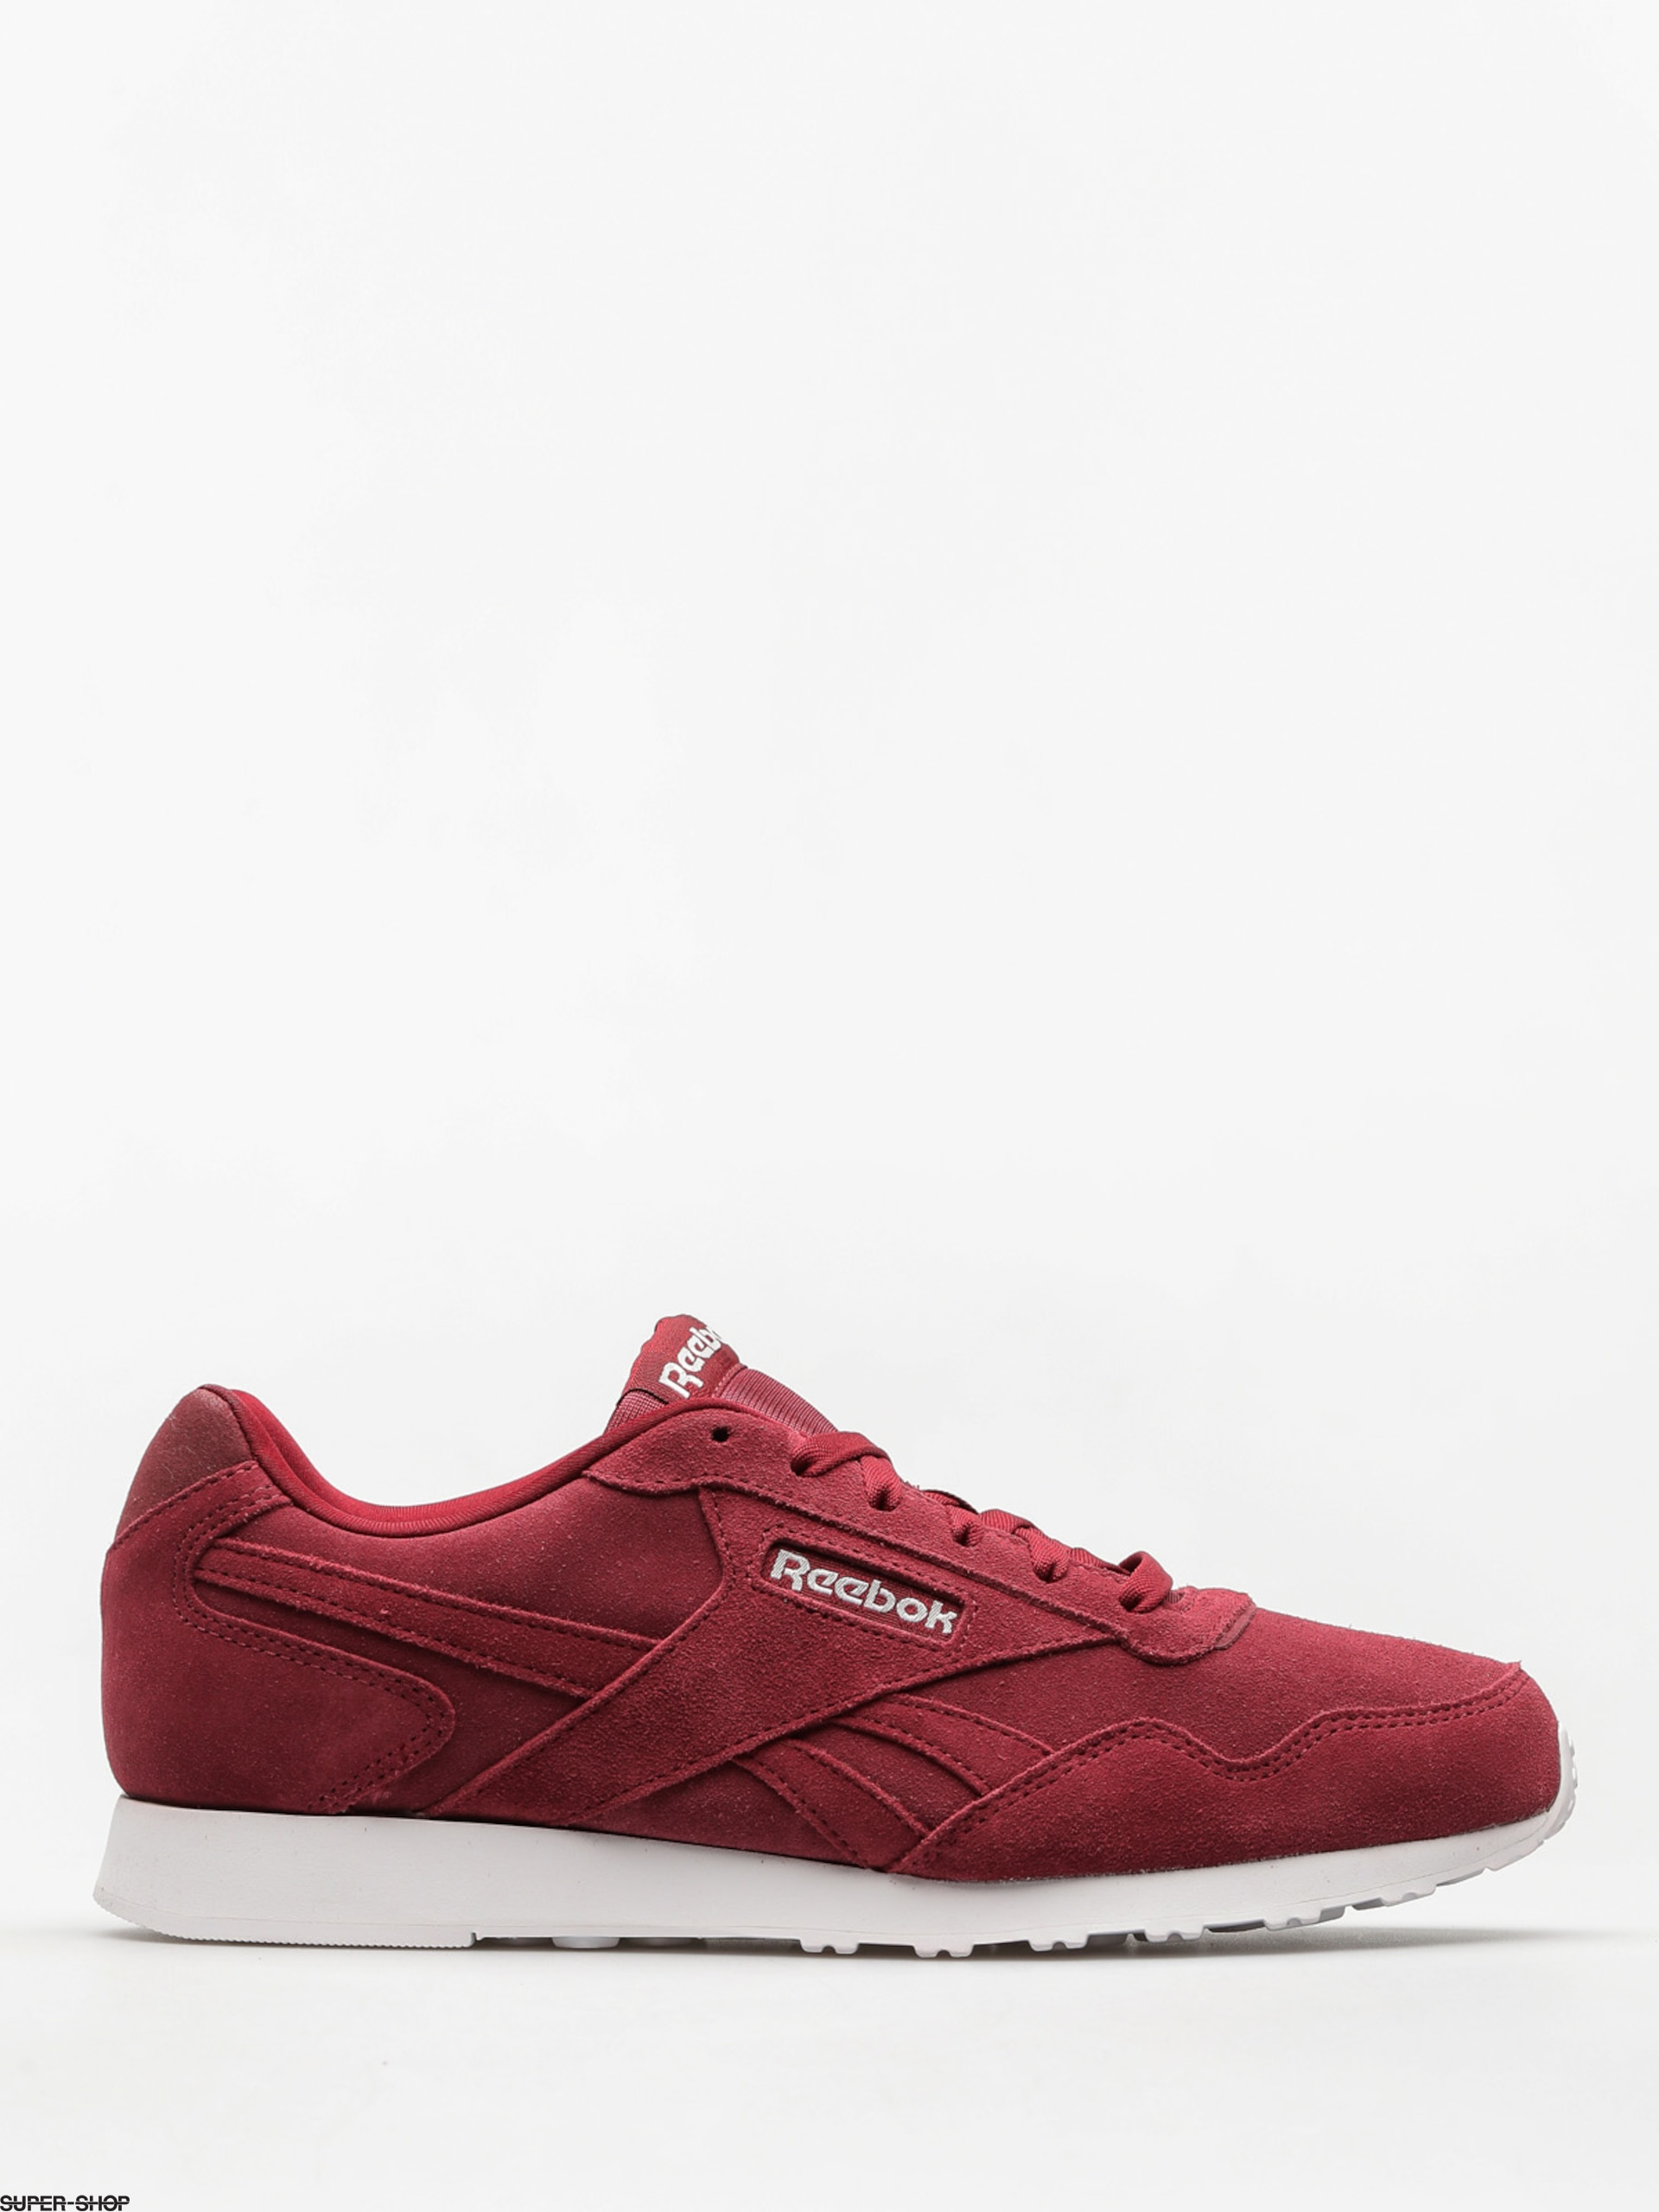 Reebok Shoes Royal Glide (collegiate burgundy/white)